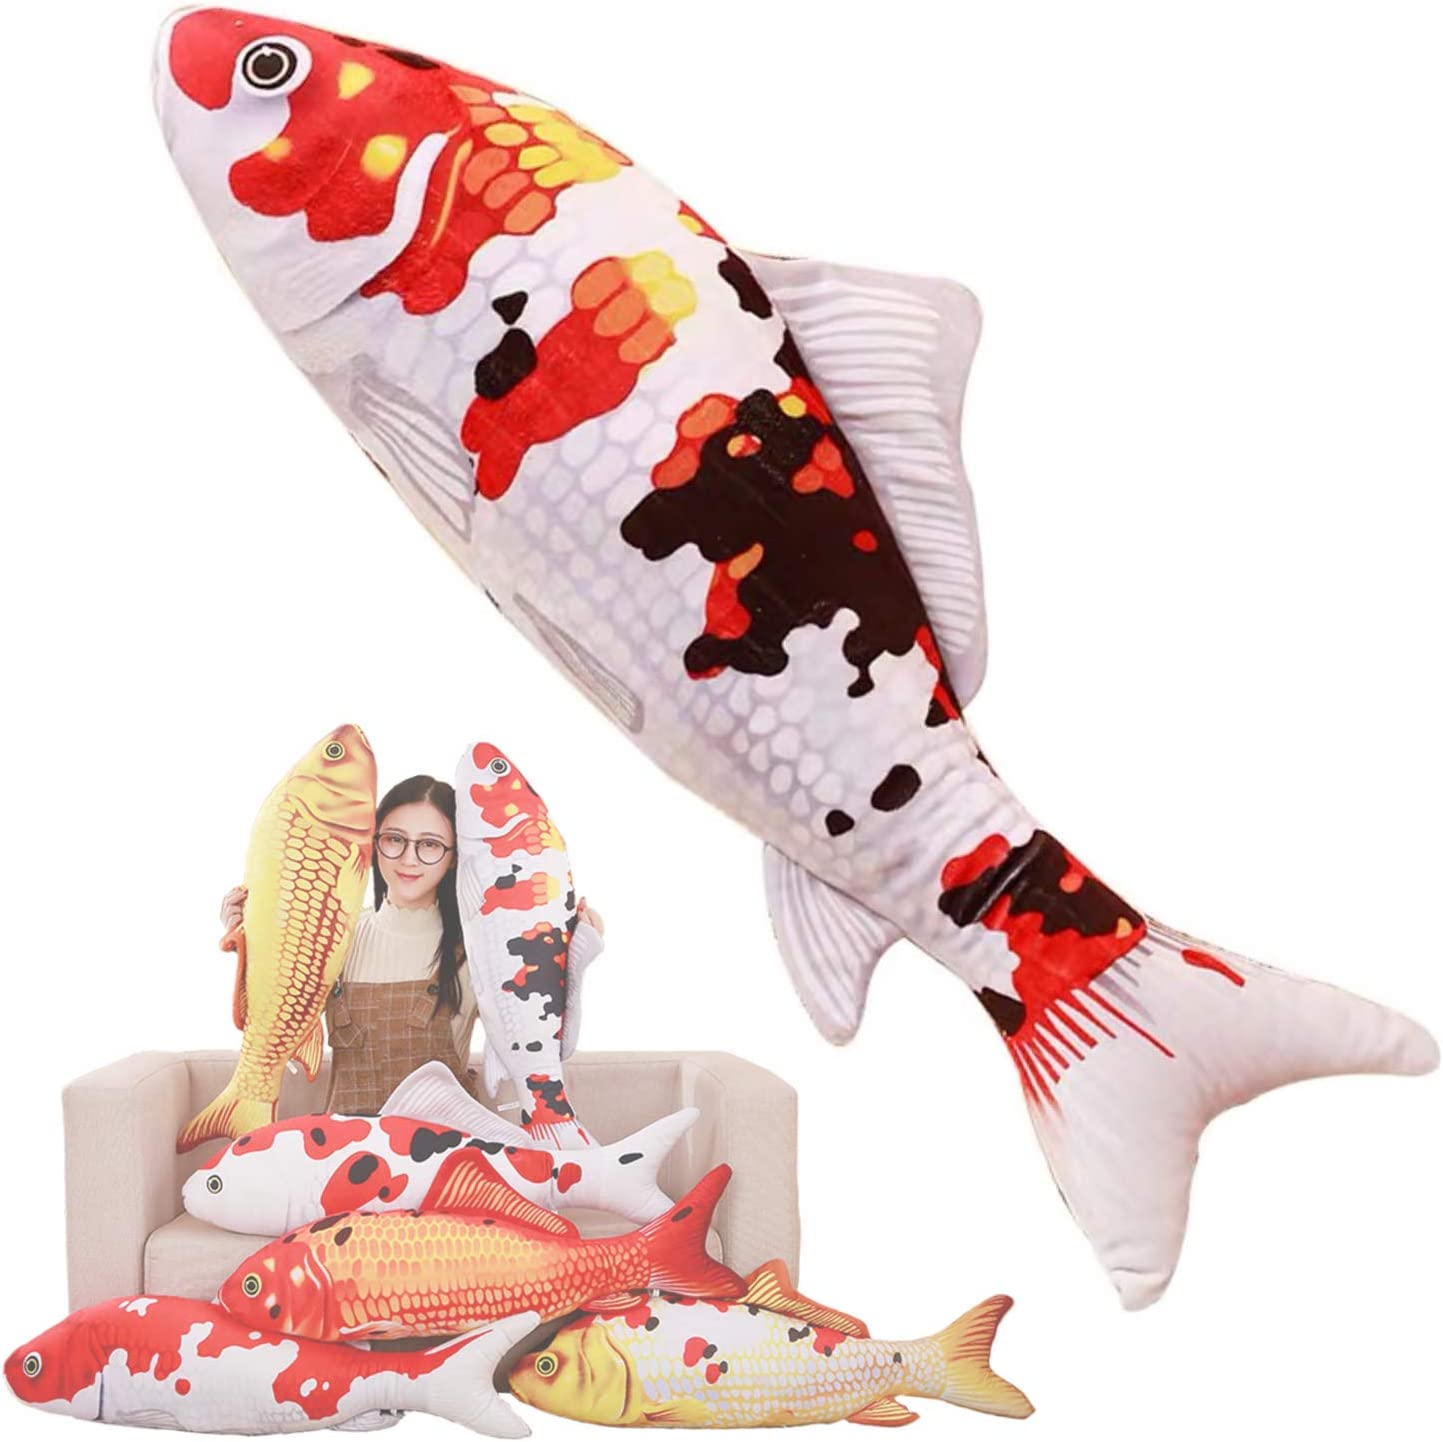 Simulation Fish Plush Toy Soft Fish Toy Pillow Cushion Stuffed Toy Oversized Pillow Creative Gift Home Decor 23.6 in, Tricolor Red Carp